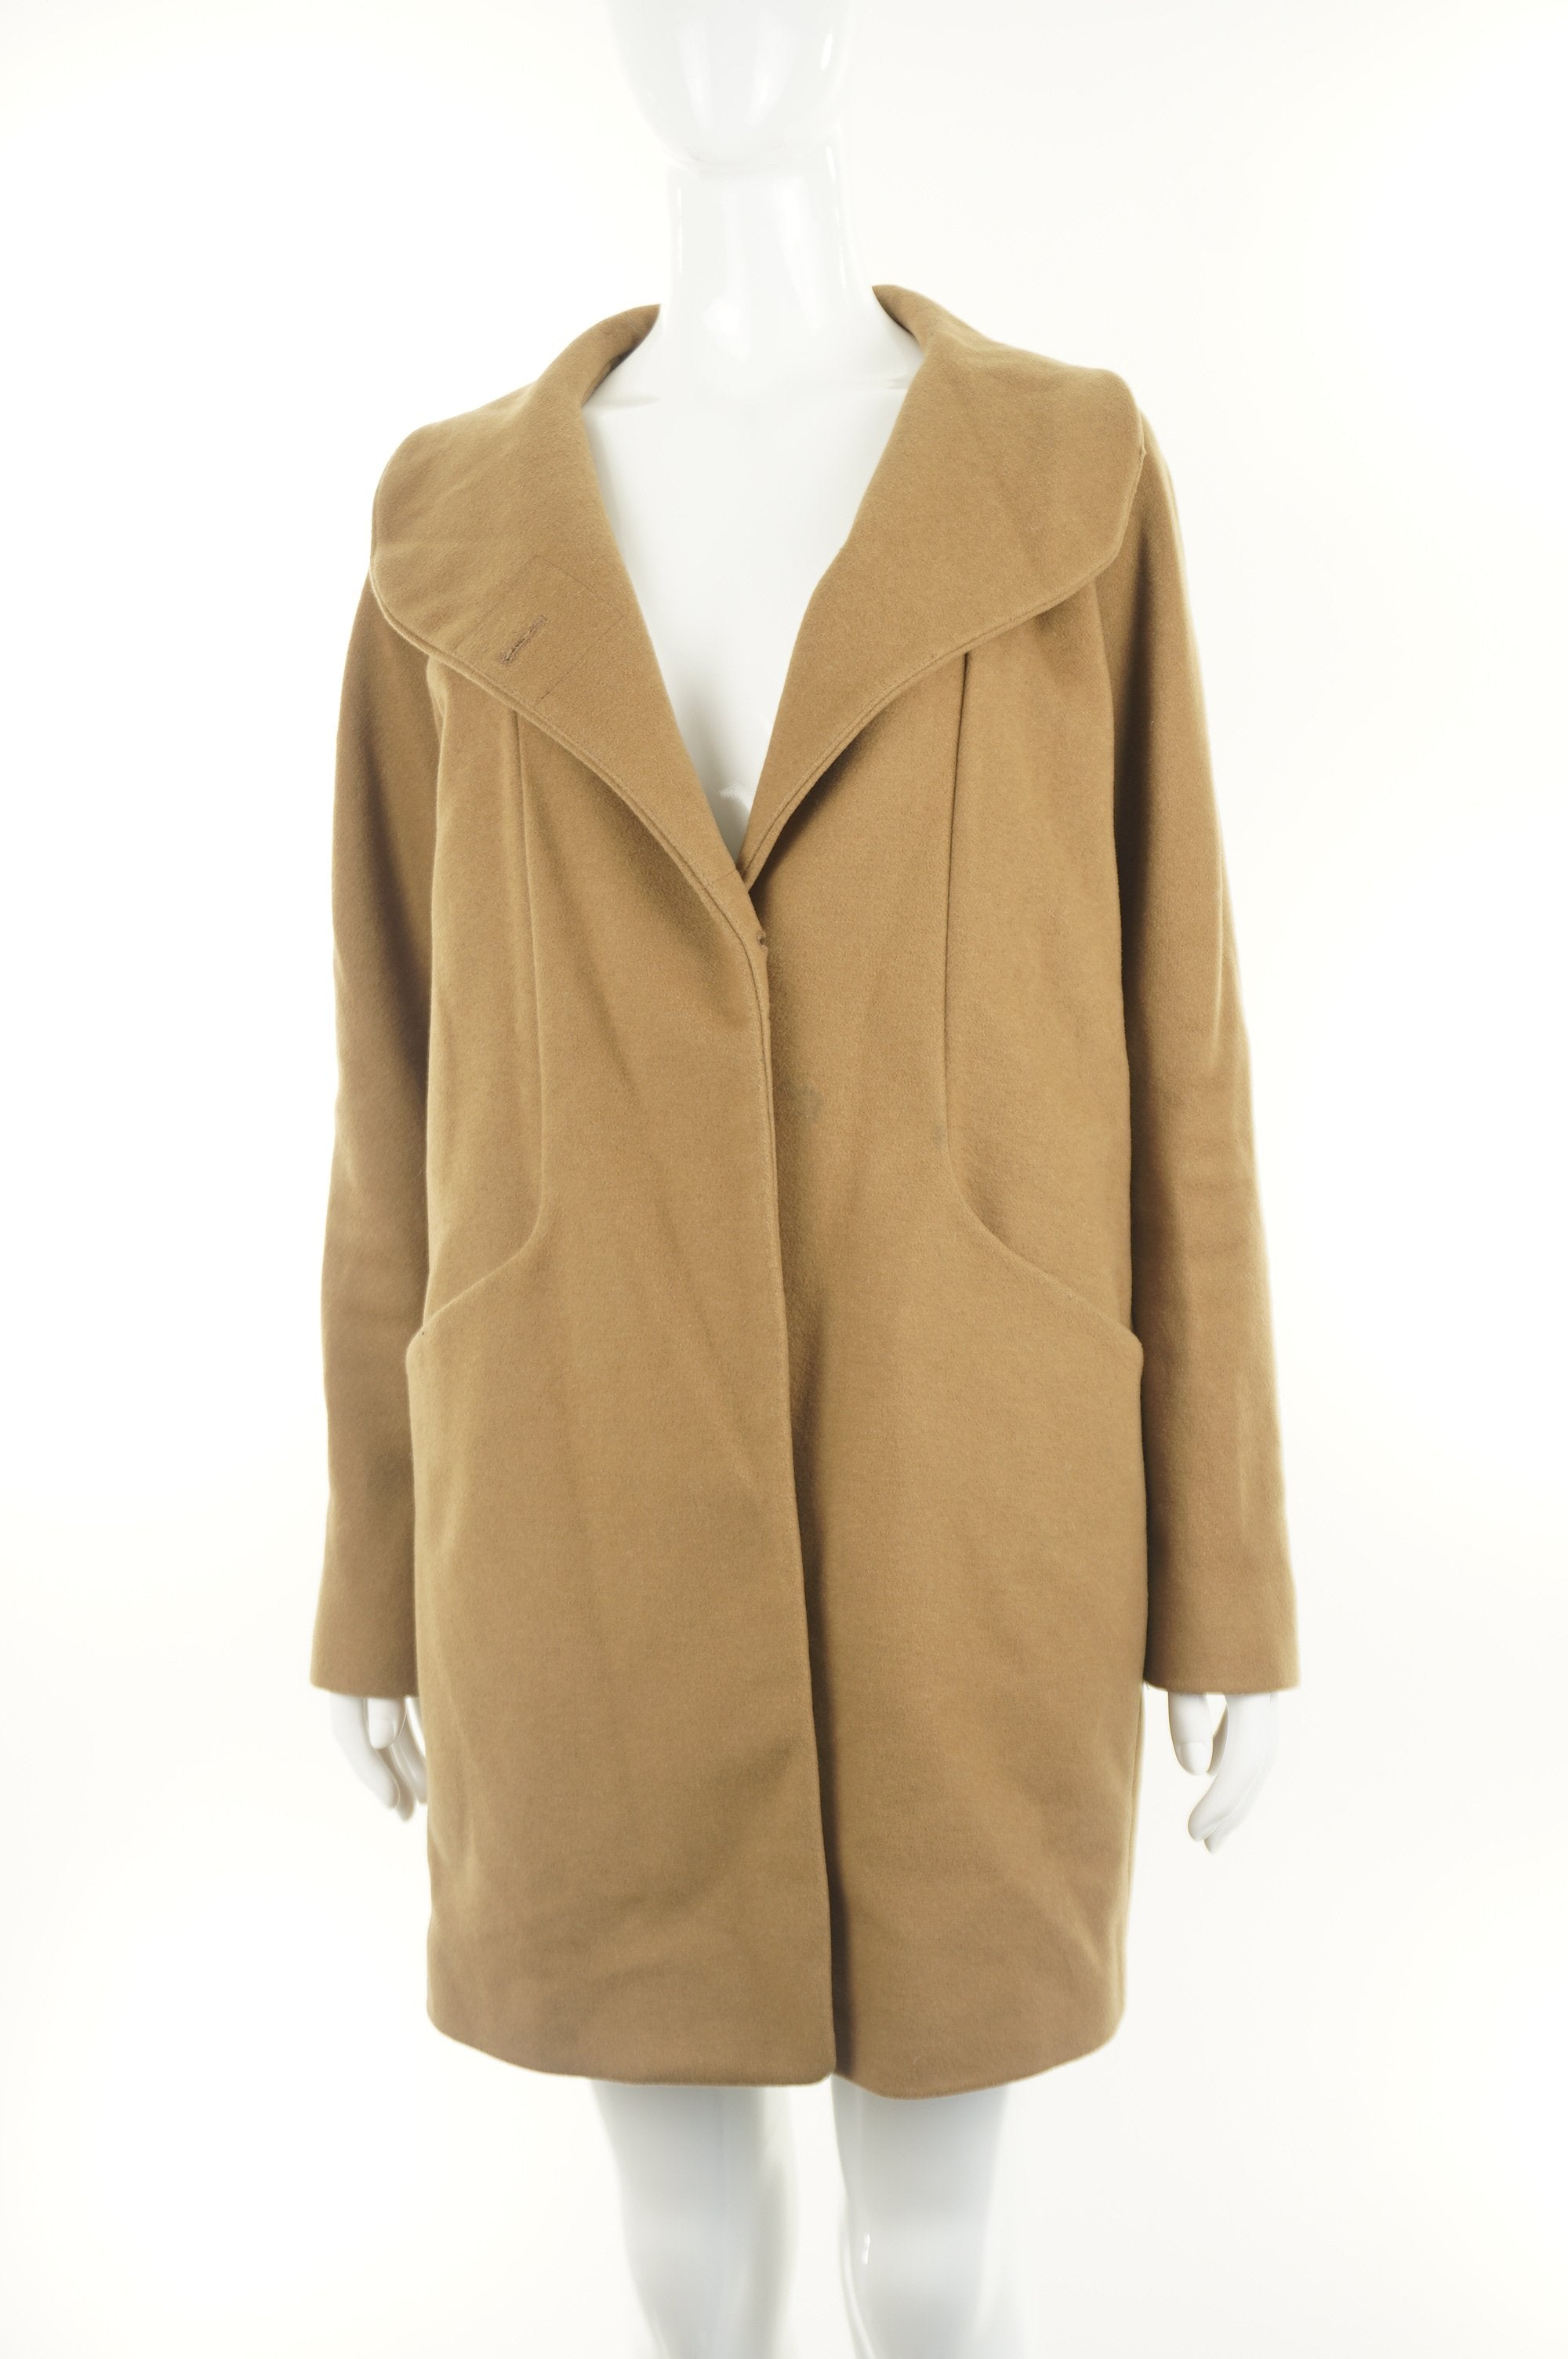 Wilfred Warm Winter Wool Coat, Aritzia's winter favorite. Wool and cashmere winter coat. Streamlined design with warm collar to be worn up or down. Made in Canada;), Brown, Exterior: 70% Wool, 20% Polyamide, 10% cashmere, women's Jackets & Coats, women's Brown Jackets & Coats, Wilfred women's Jackets & Coats, women's wool coat, aritzia winter wrap coat, aritzia wool overcoat, aritzia cashmere overcoat for winter, aritzia cashmere trench coat for winter